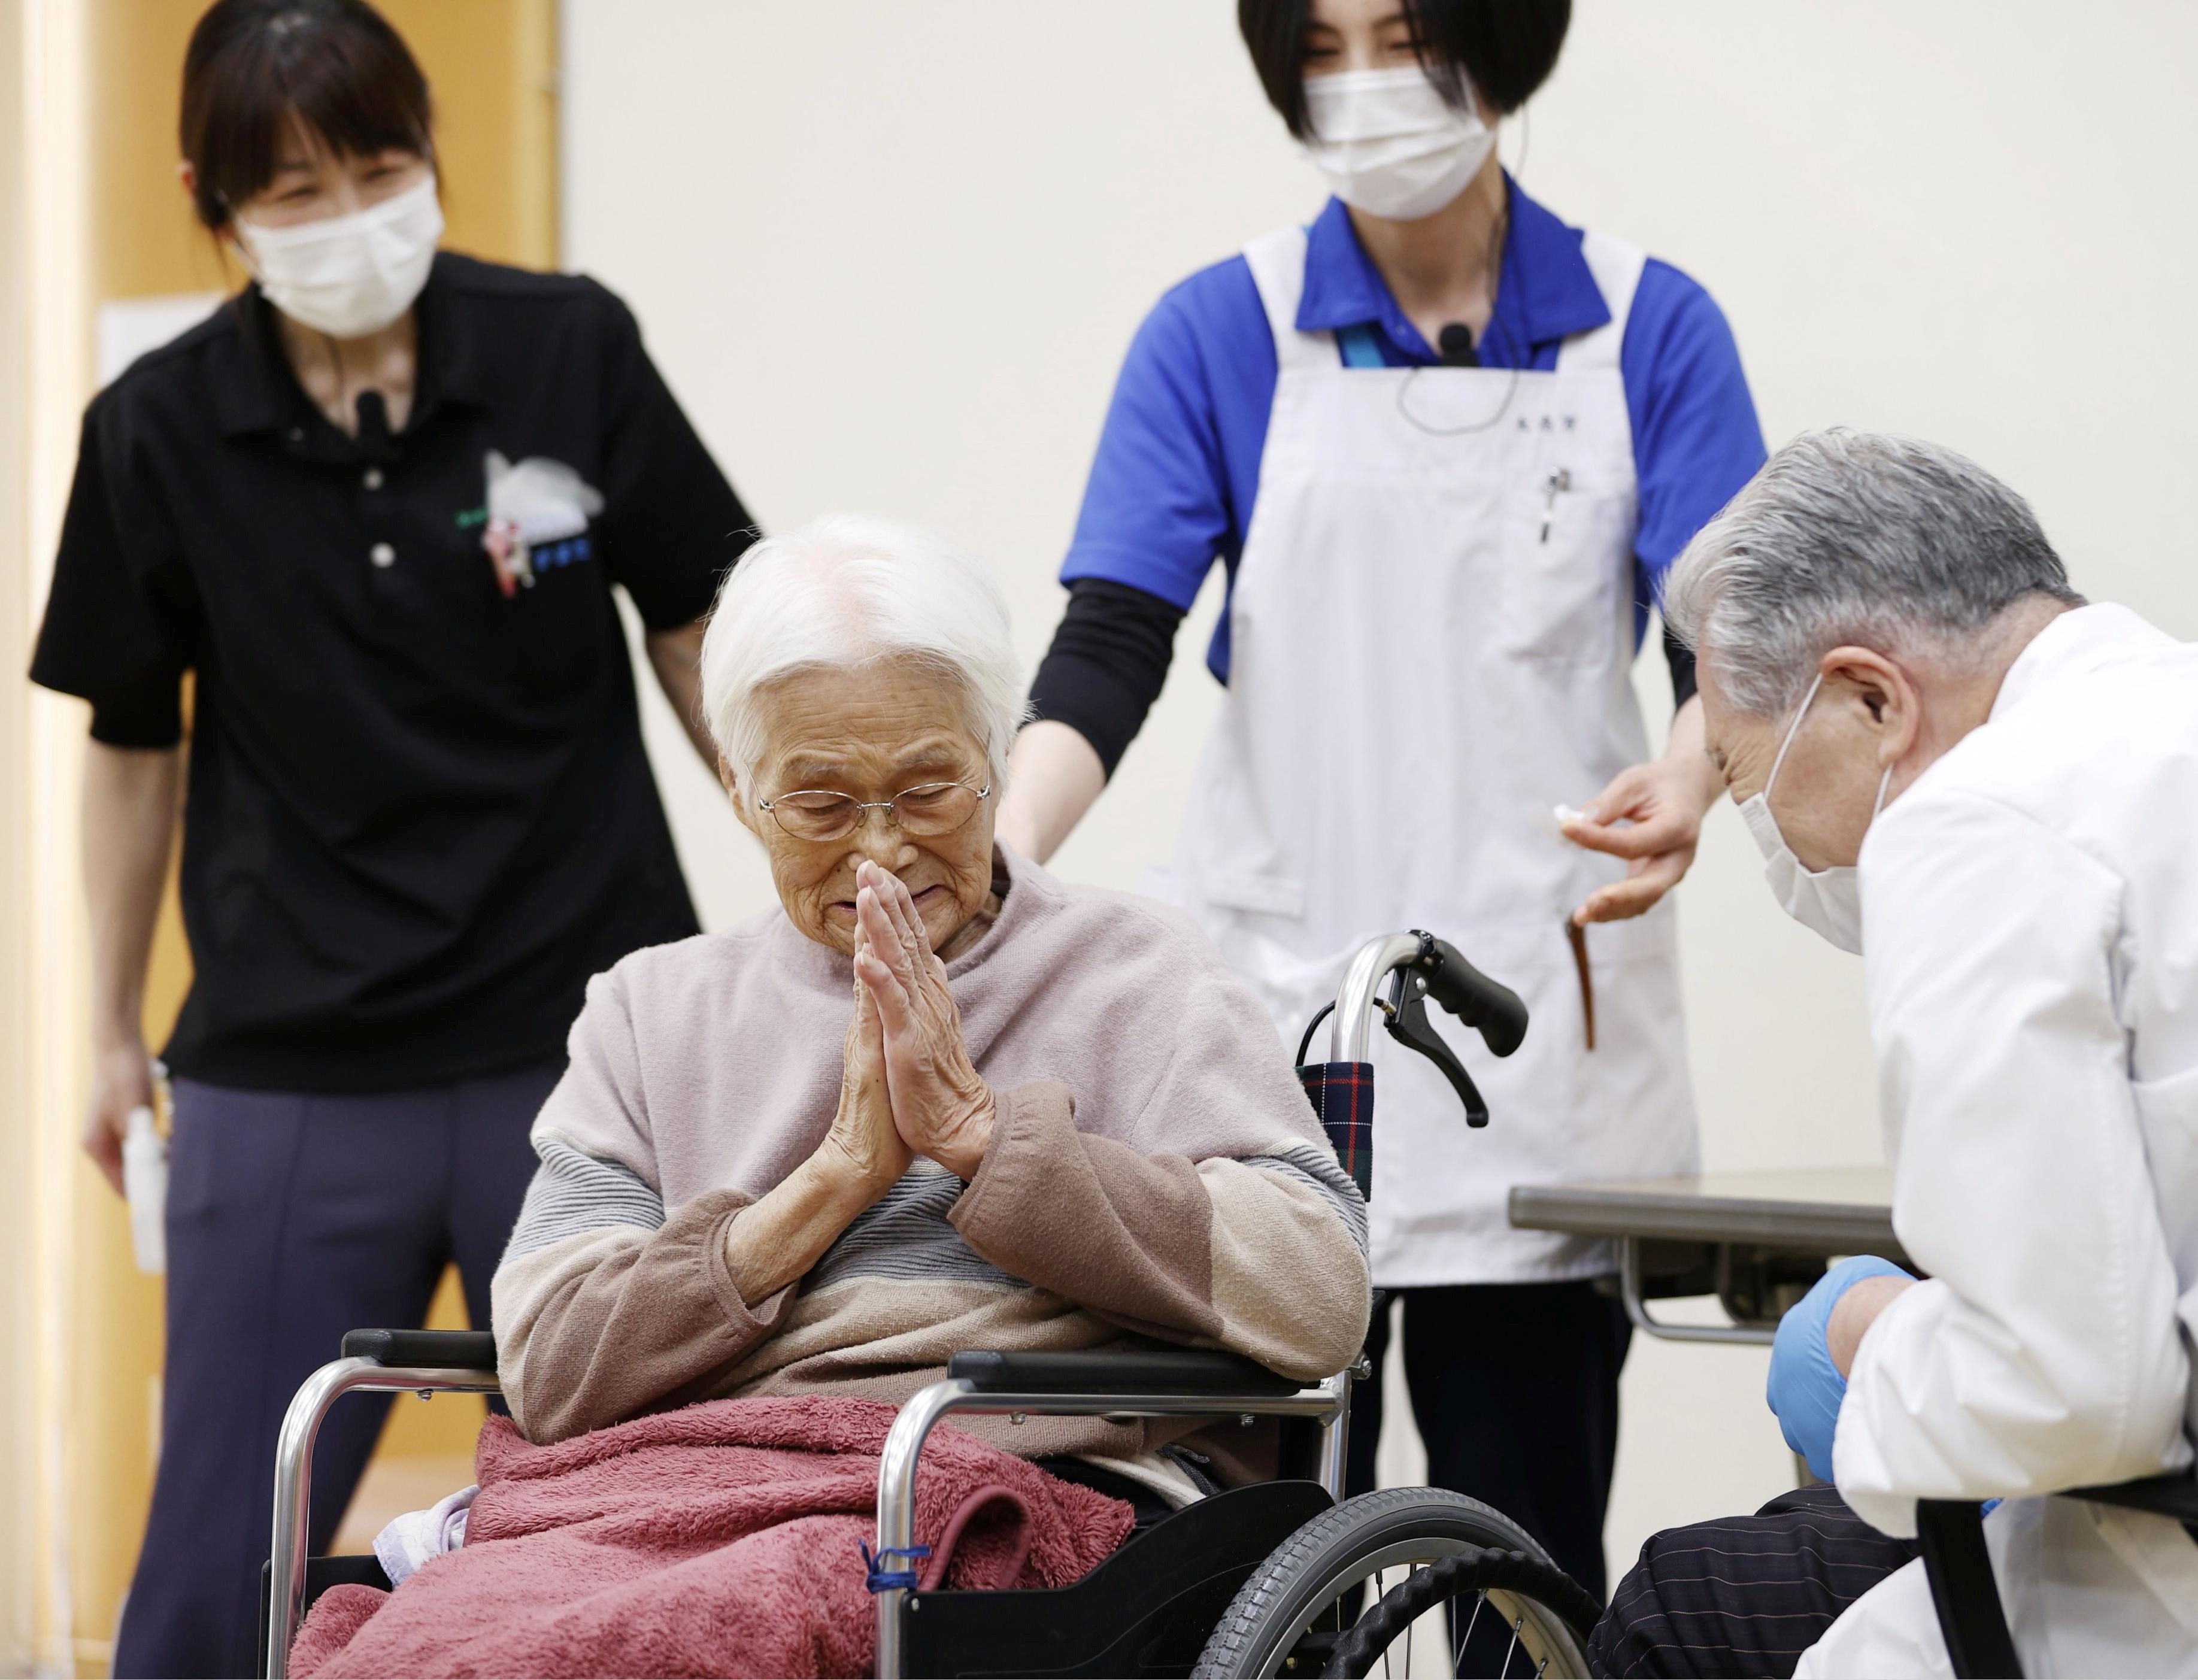 An elderly woman gestures to express gratitude after receiving a coronavirus disease (COVID-19) vaccination in Itami, western Japan April 12, 2021, in this photo released by Kyodo. Kyodo/via REUTERS